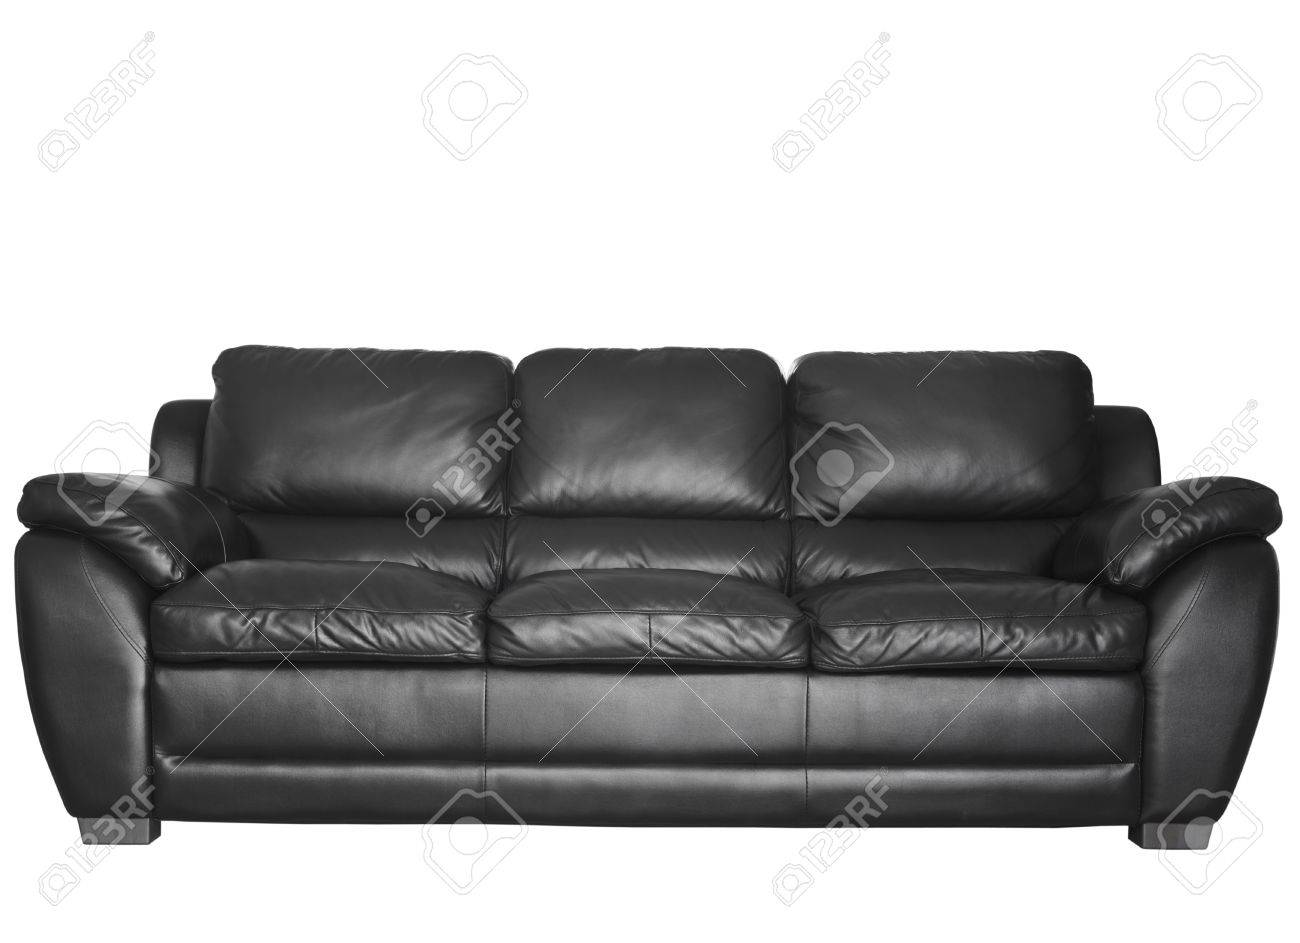 Image of a modern black leather sofa isolated against white background Stock Photo - 13172343